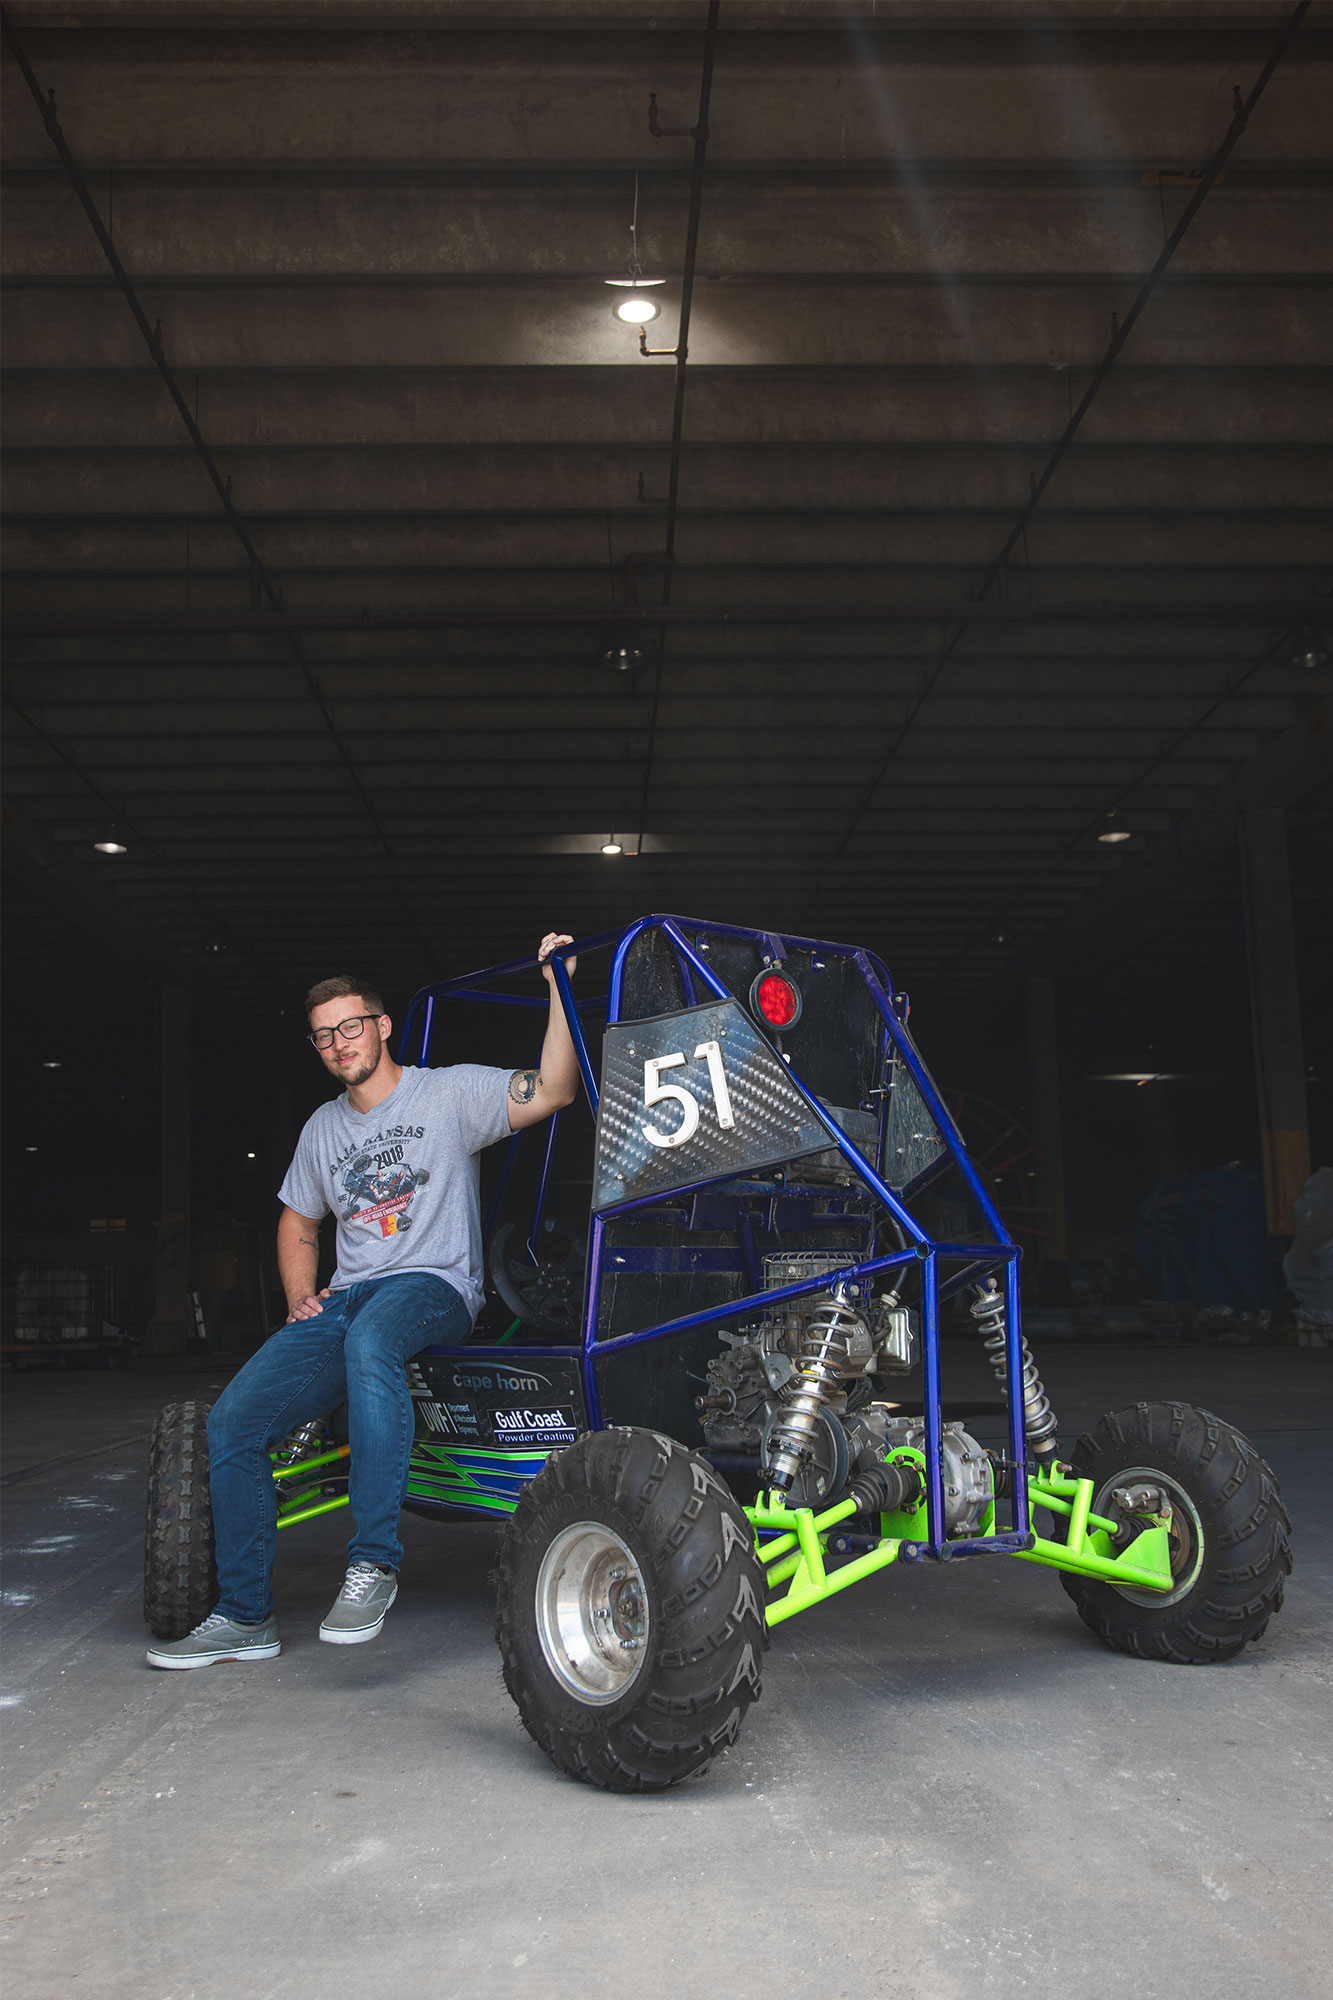 steven thornton with the off-road vehicle that was fabricated by UWF SAE Baja team that he led